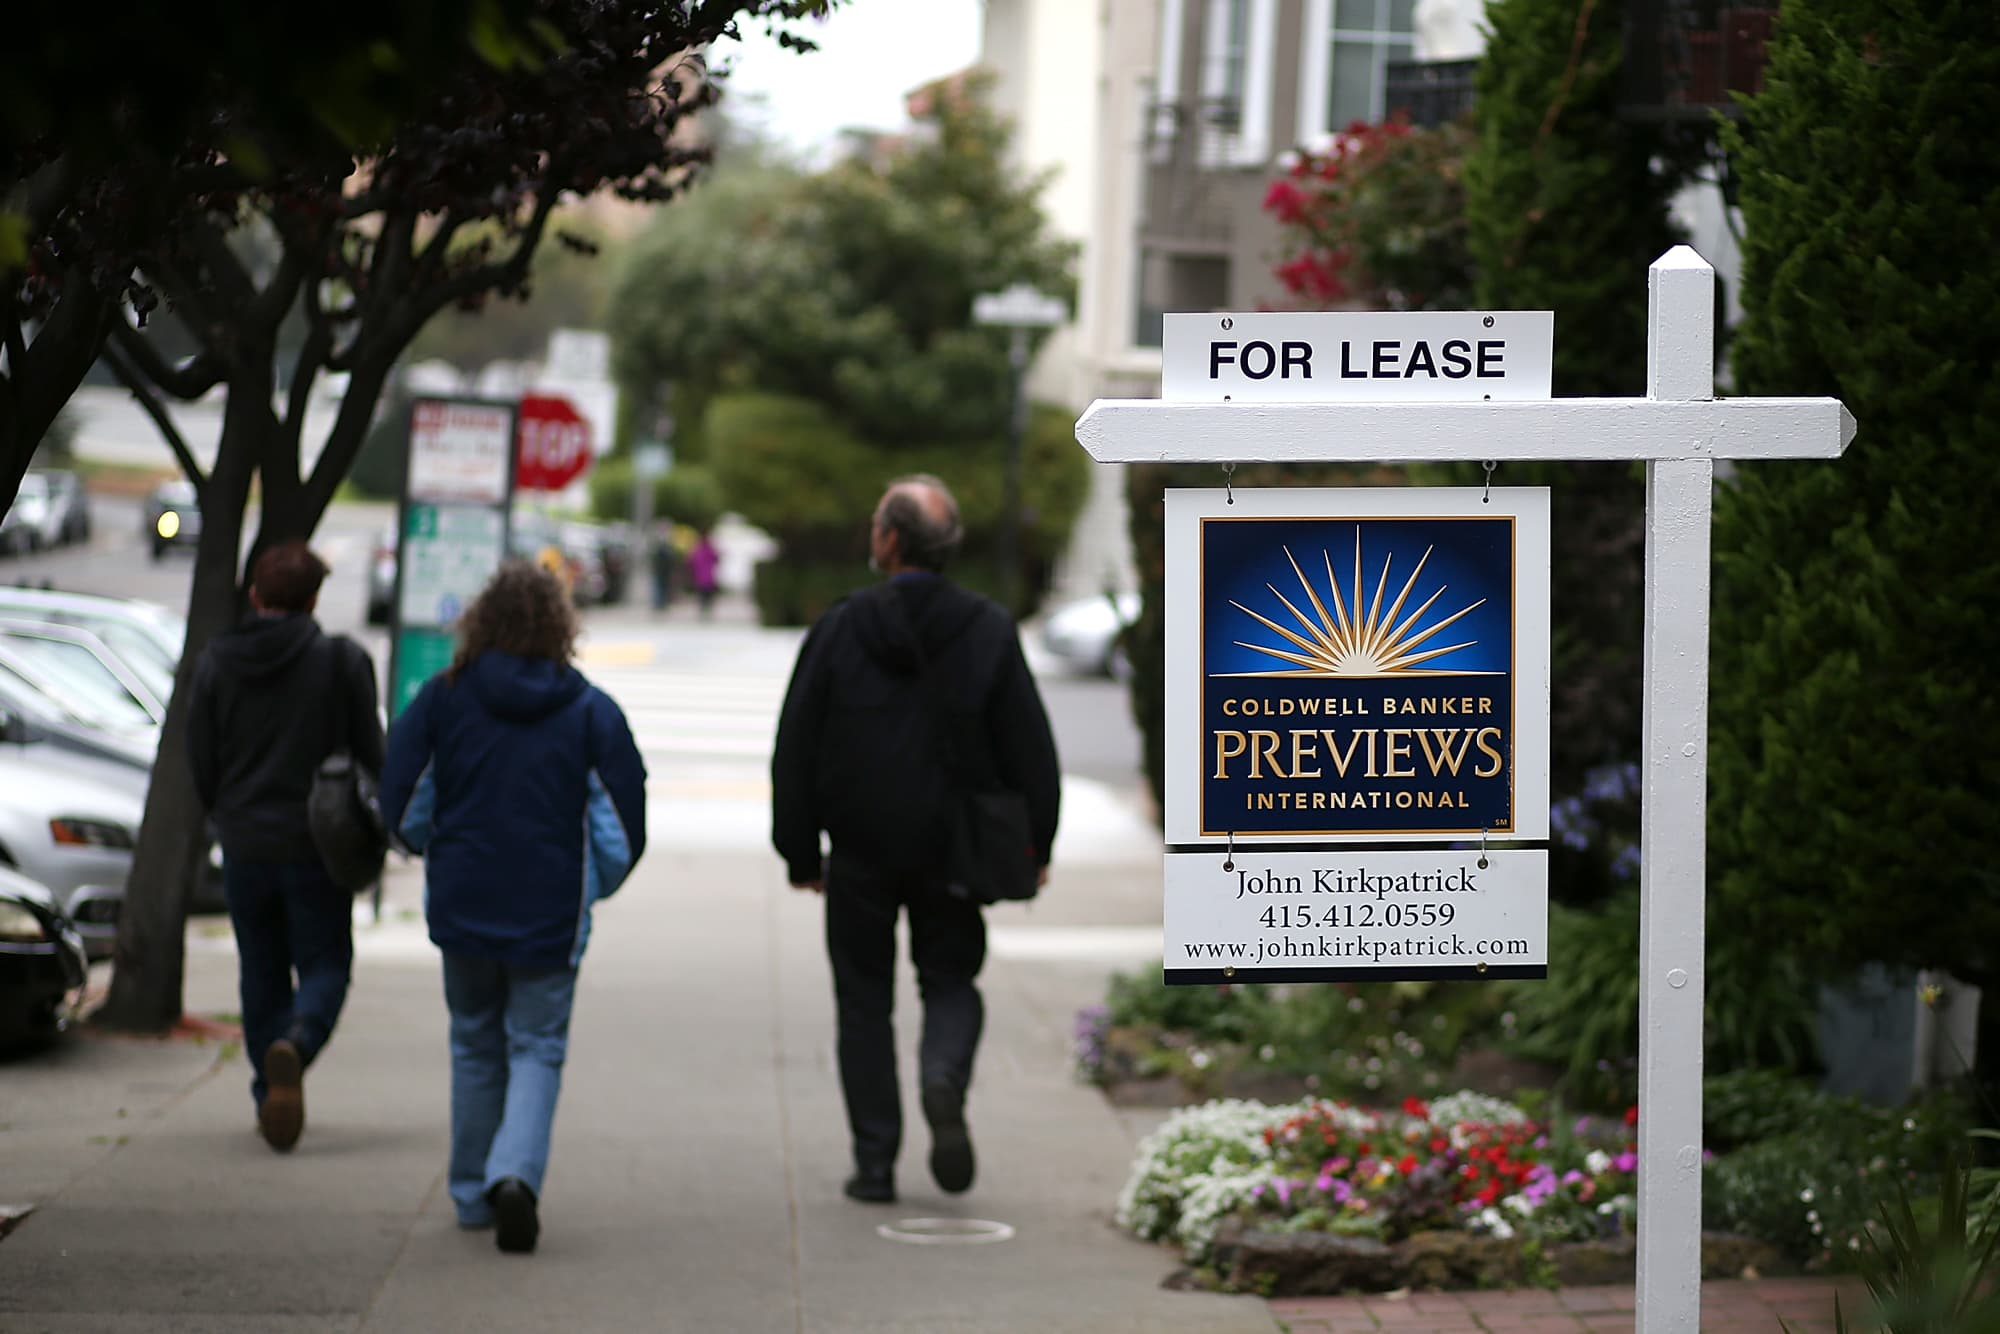 Pedestrians Walk By A For Lease Sign In San Francisco, California.